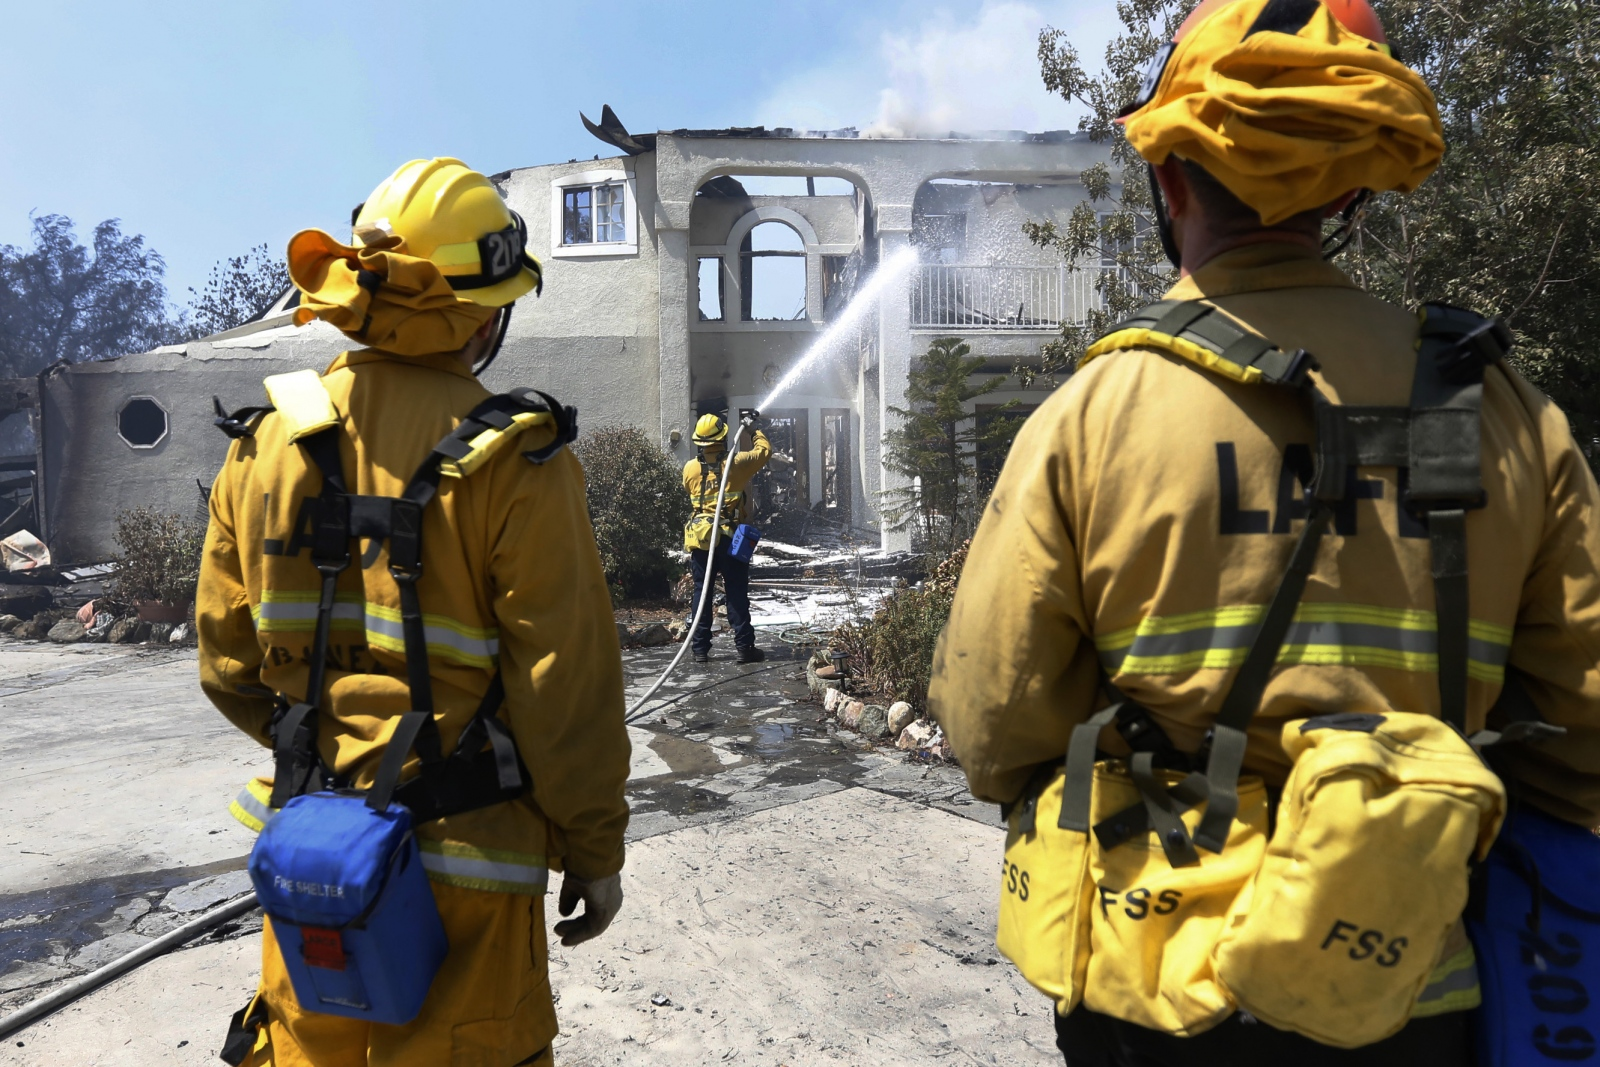 Los Angeles City firefighters use foam to put out hot spots on a damaged house on Iron Canyon Road off of Sand Canyon Road after the Sand Fire swept through on Saturday. Katharine Lotze/The Signal